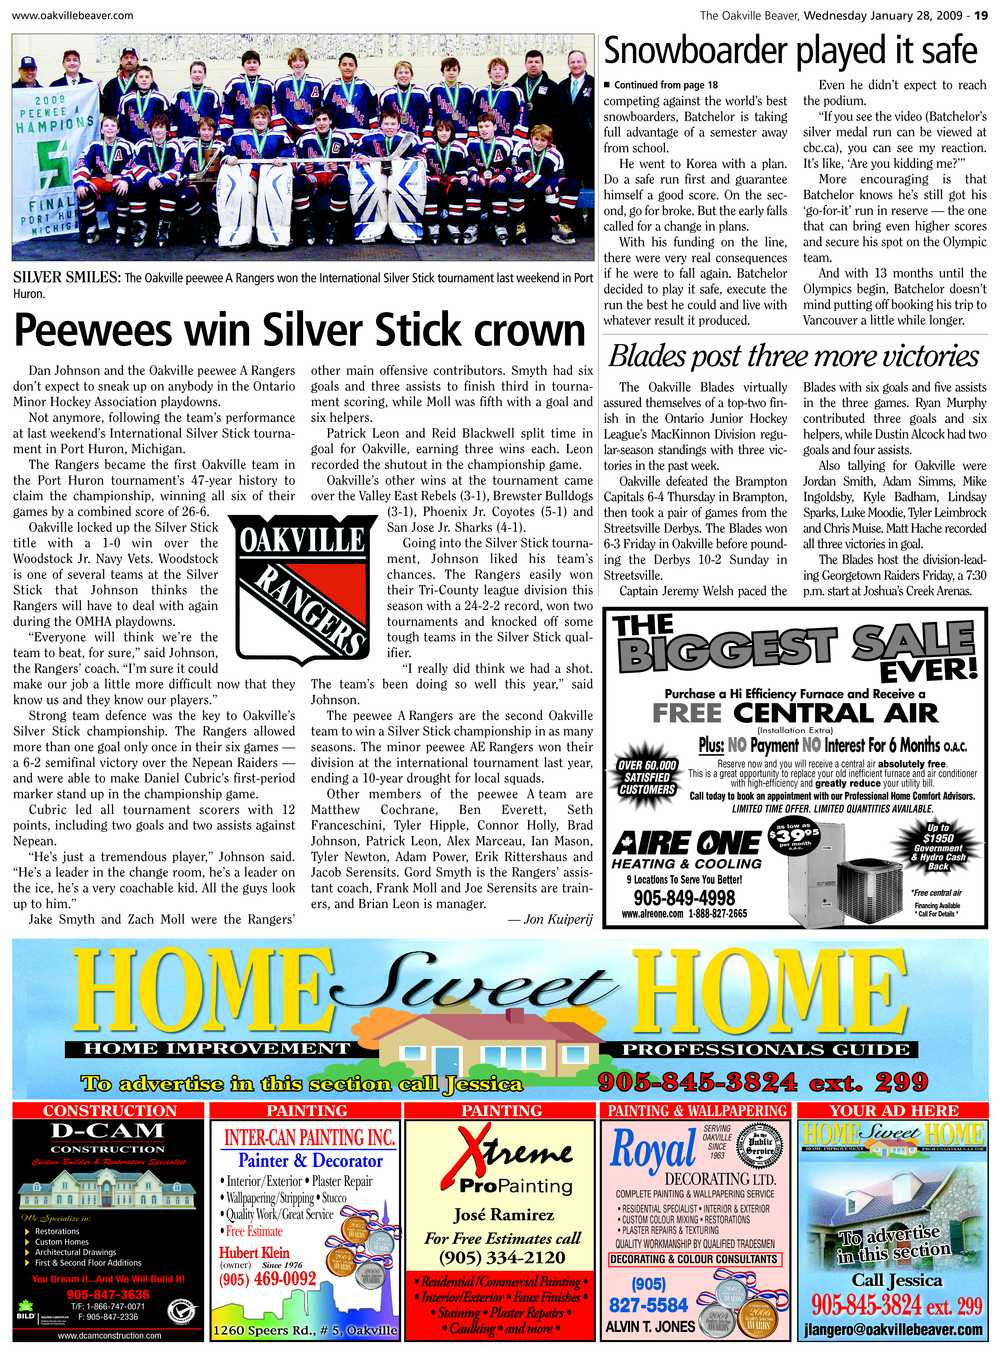 Peewees win Silver Stick crown